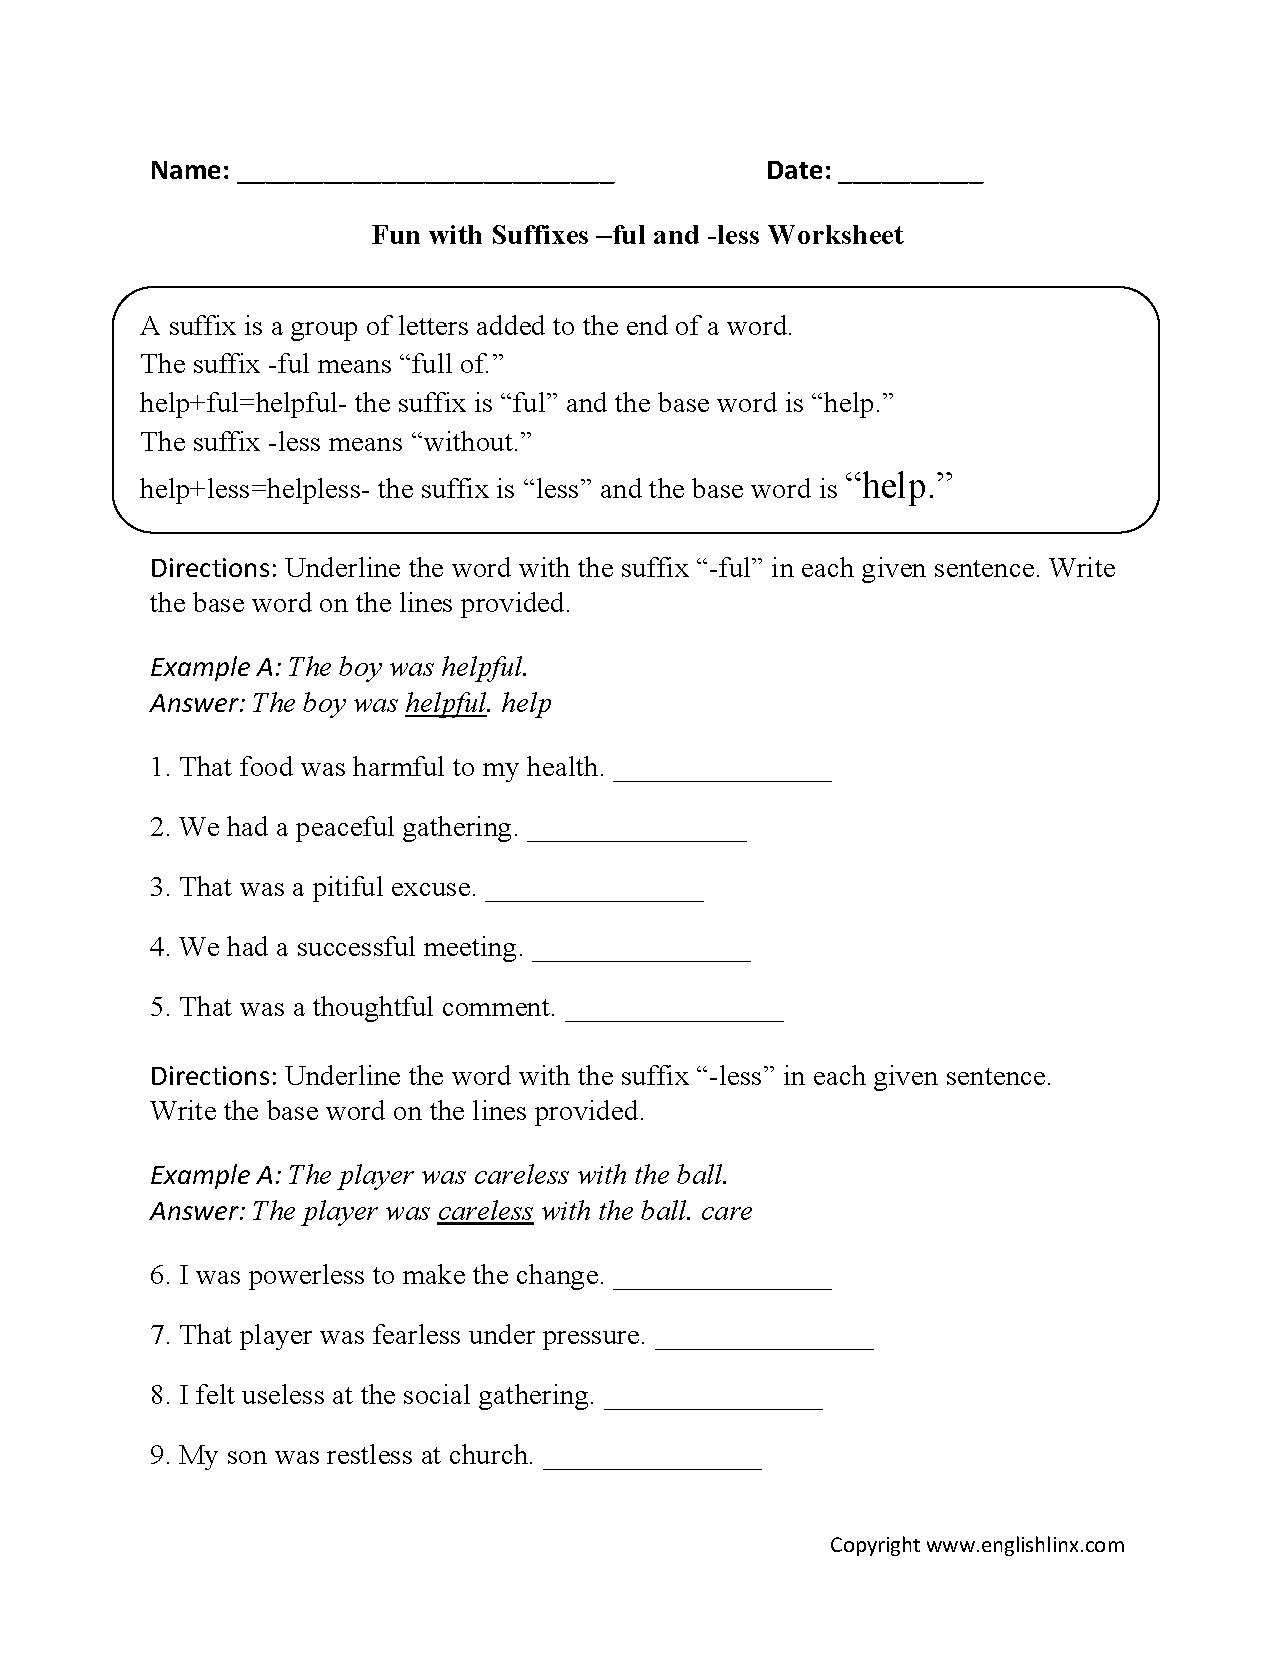 Worksheets Ged Language Arts Worksheets fun with suffixes ful and less worksheets prefixes pinterest these are great for working use the beginner intermediate and